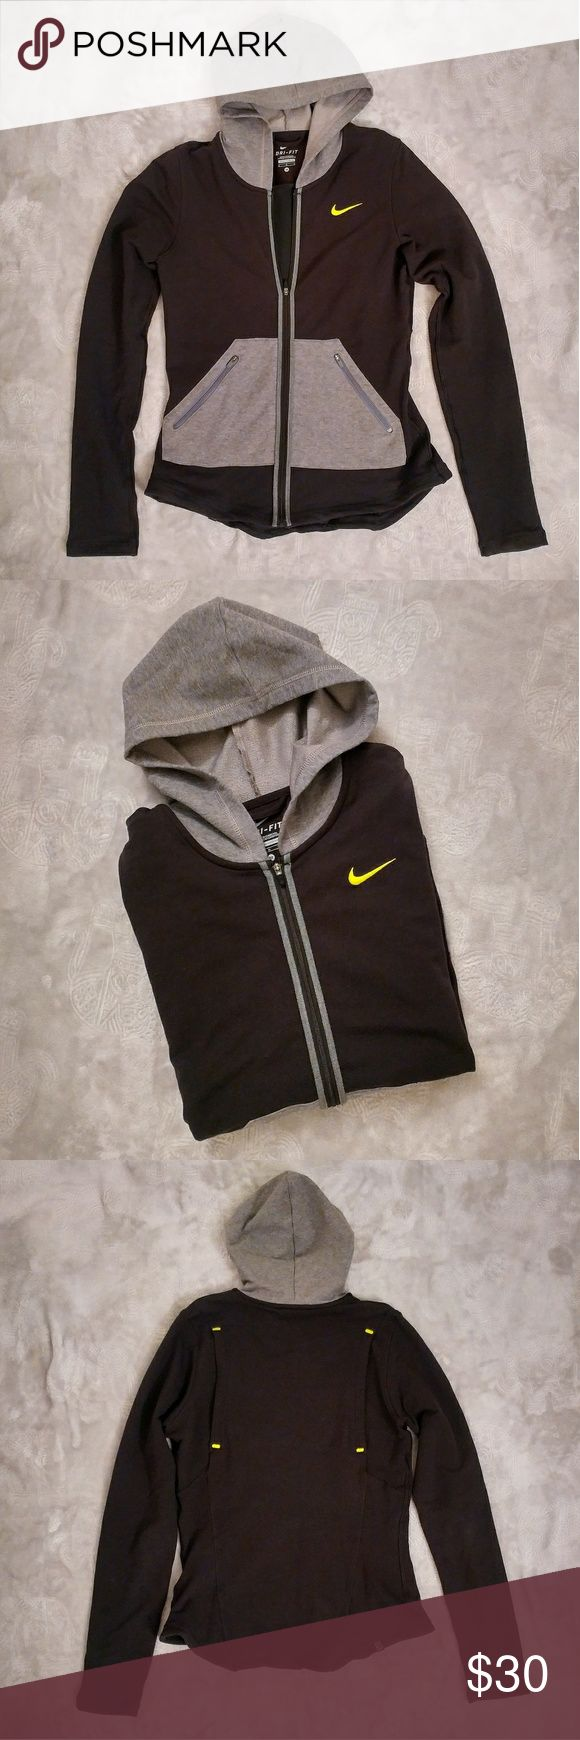 """Nike Dri-Fit Zip Up Hoodie Nike Dri-Fit Zip Up Hoodie. Like-new condition.  Bright yellow/lime green logo. Back side has """"vent"""" features with a mesh fabric on the inside to allow your body to cool if you are working out. Zippered pockets. """"Fitted"""" style hugs the body. Very comfortable! Nike Tops Sweatshirts & Hoodies"""